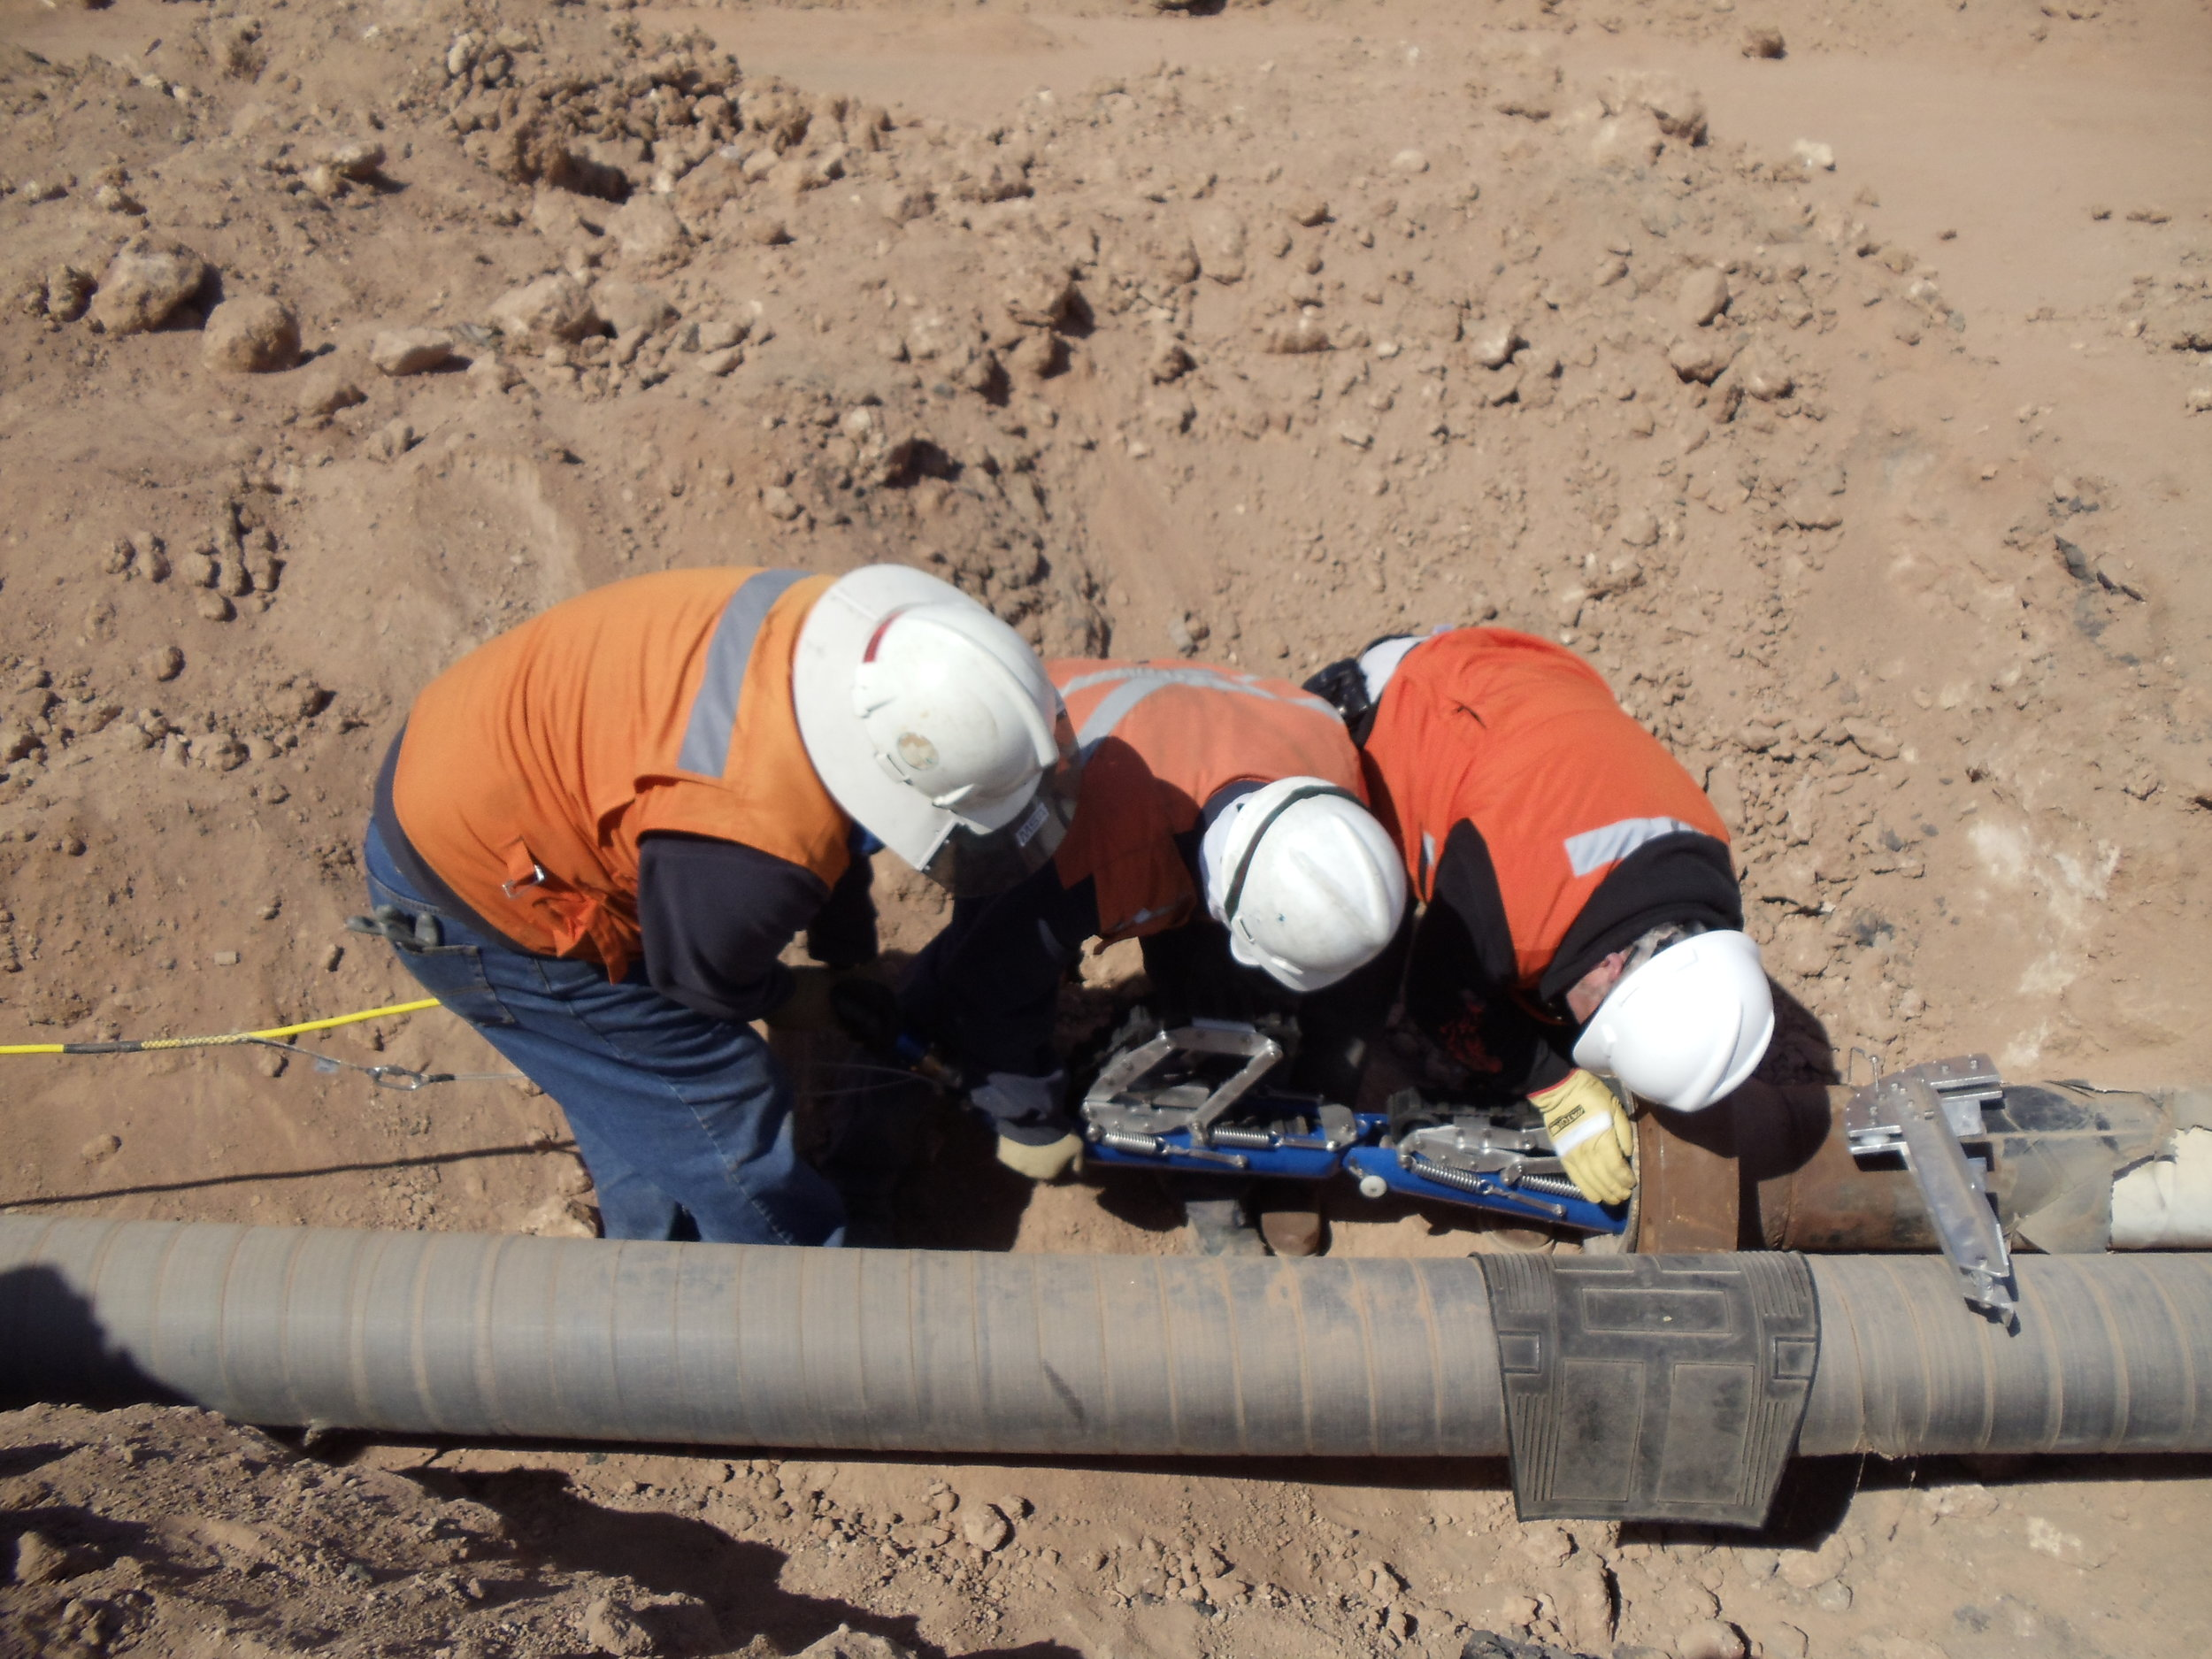 Versatrax Inspection Robotic Crawlers for Pipe Inspection